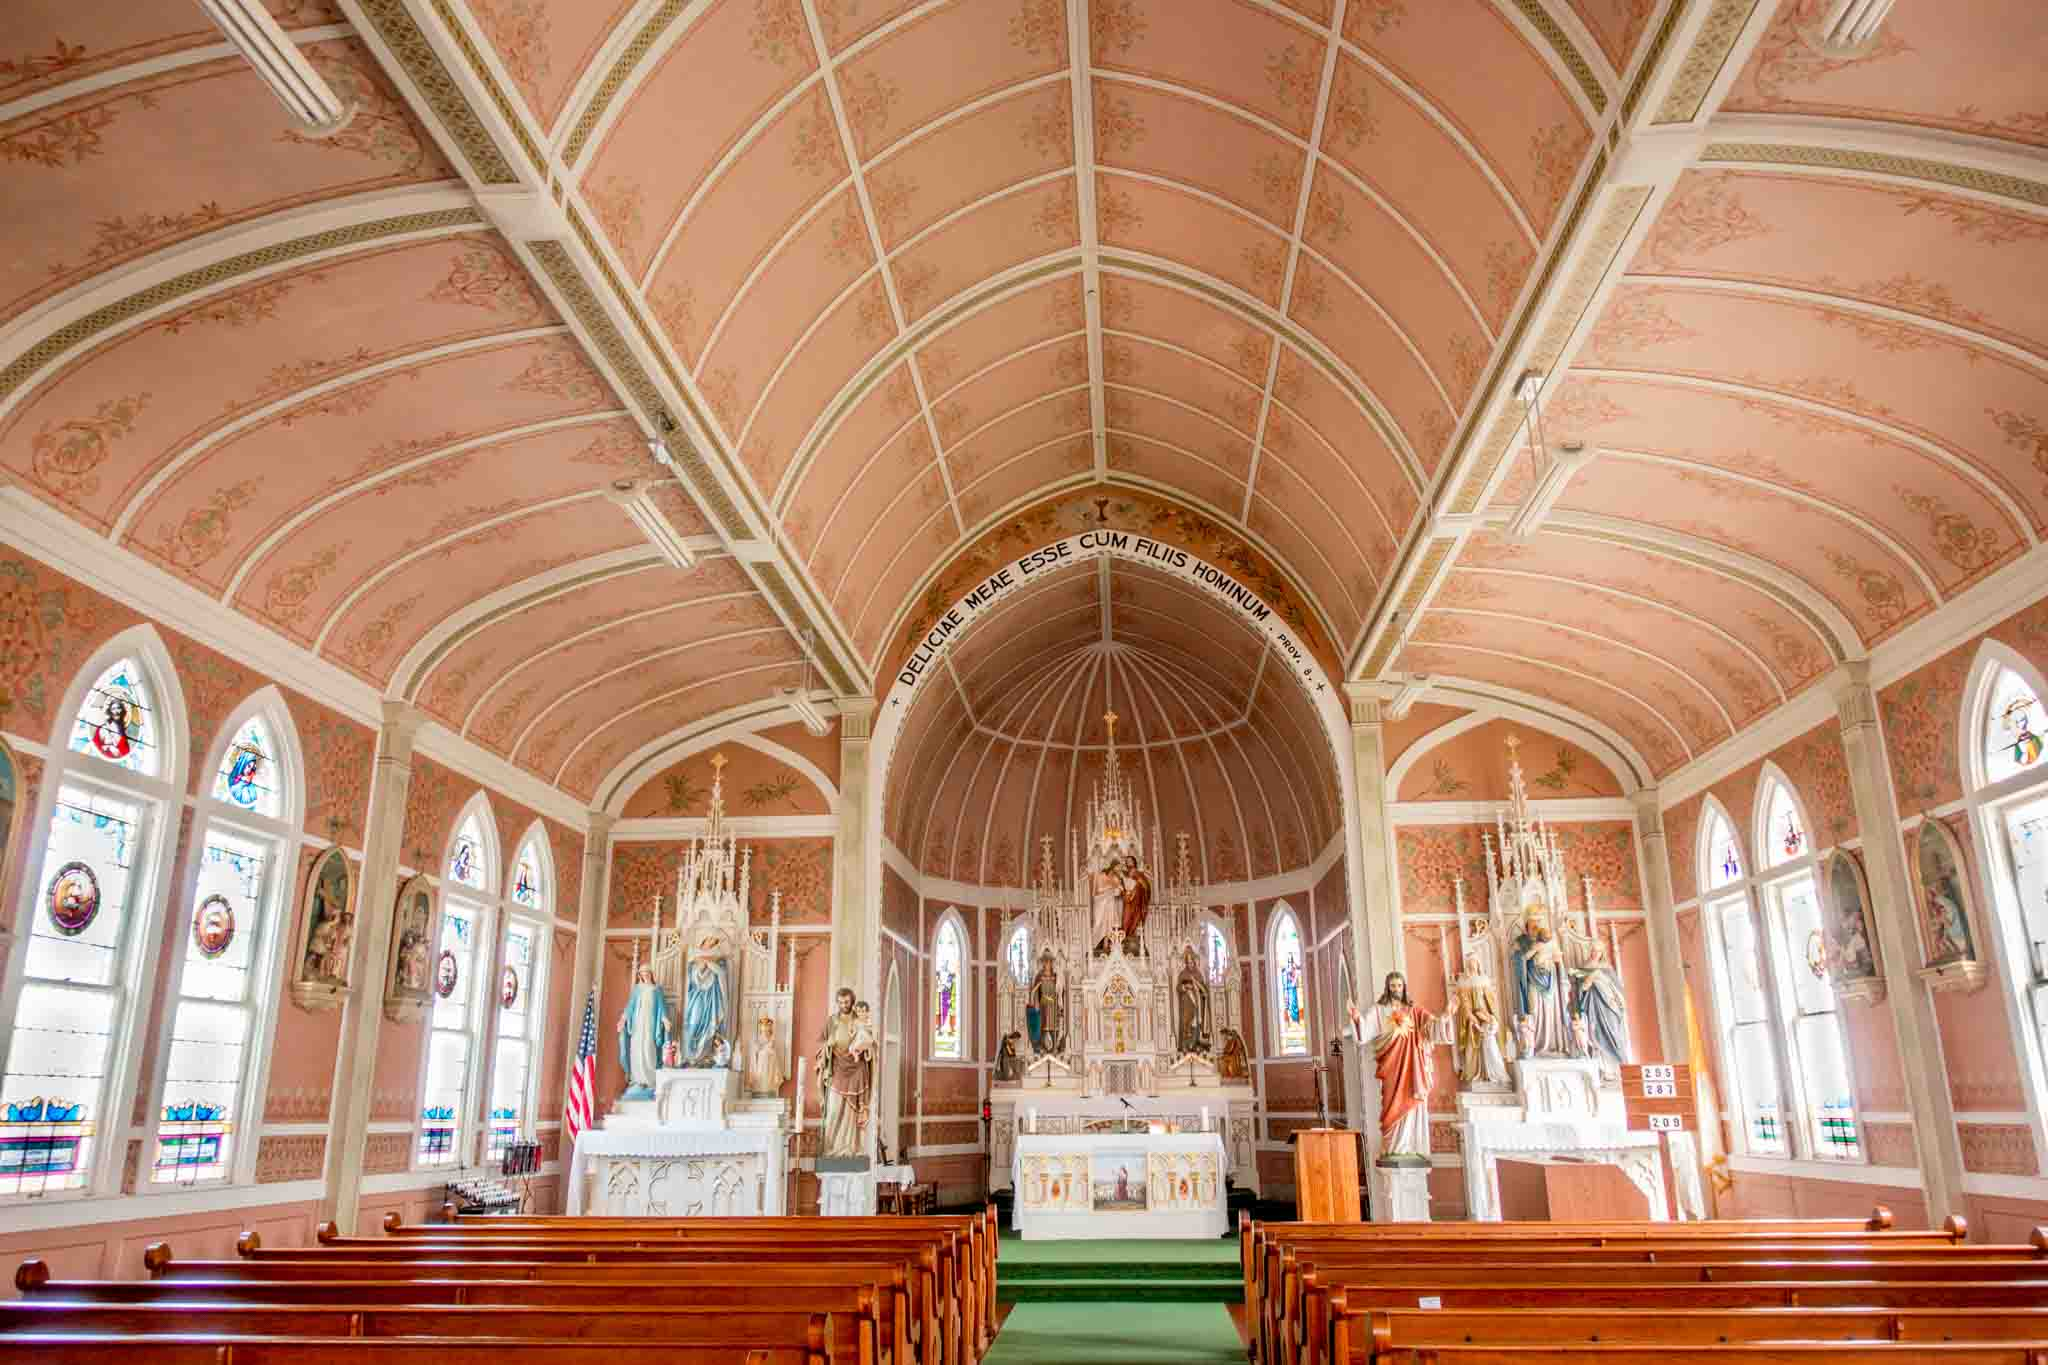 Pink sanctuary of St. John the Baptist with religious statues